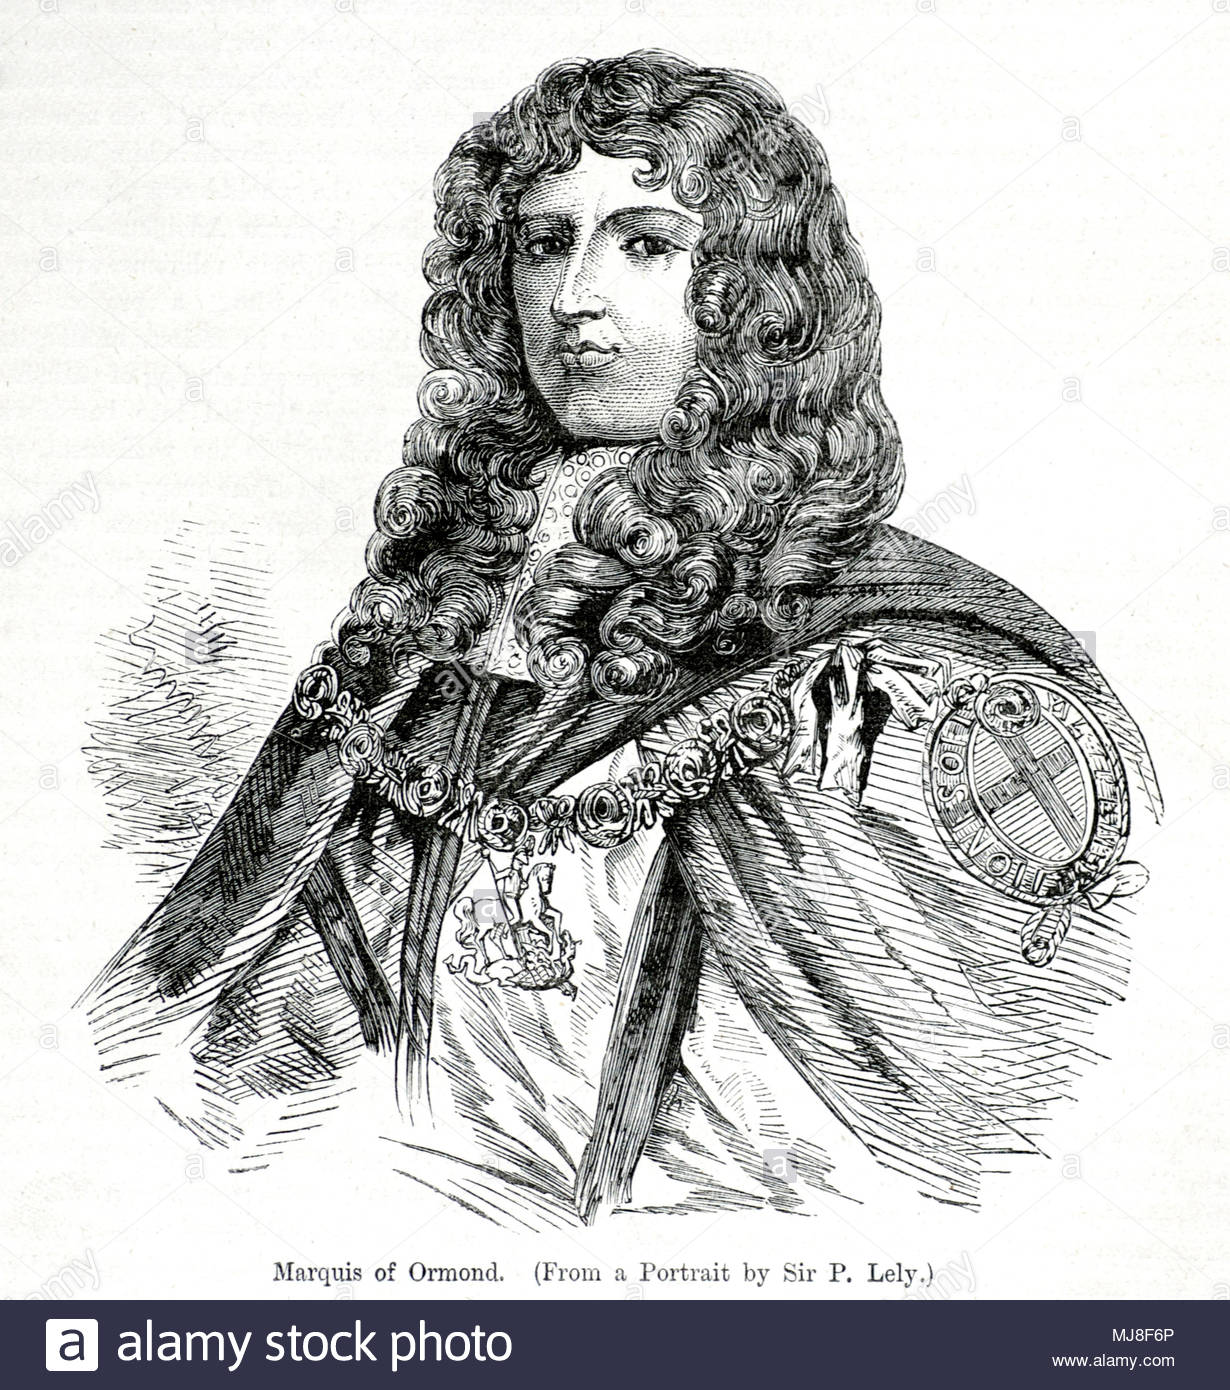 James Butler, 1st Duke of Ormond, 1610 – 1688, was an Anglo-Irish statesman and soldier, known as Earl of Ormond from 1634 to 1642 and Marquess of Ormond from 1642 to 1661, antique illustration from circa 1880 - Stock Image